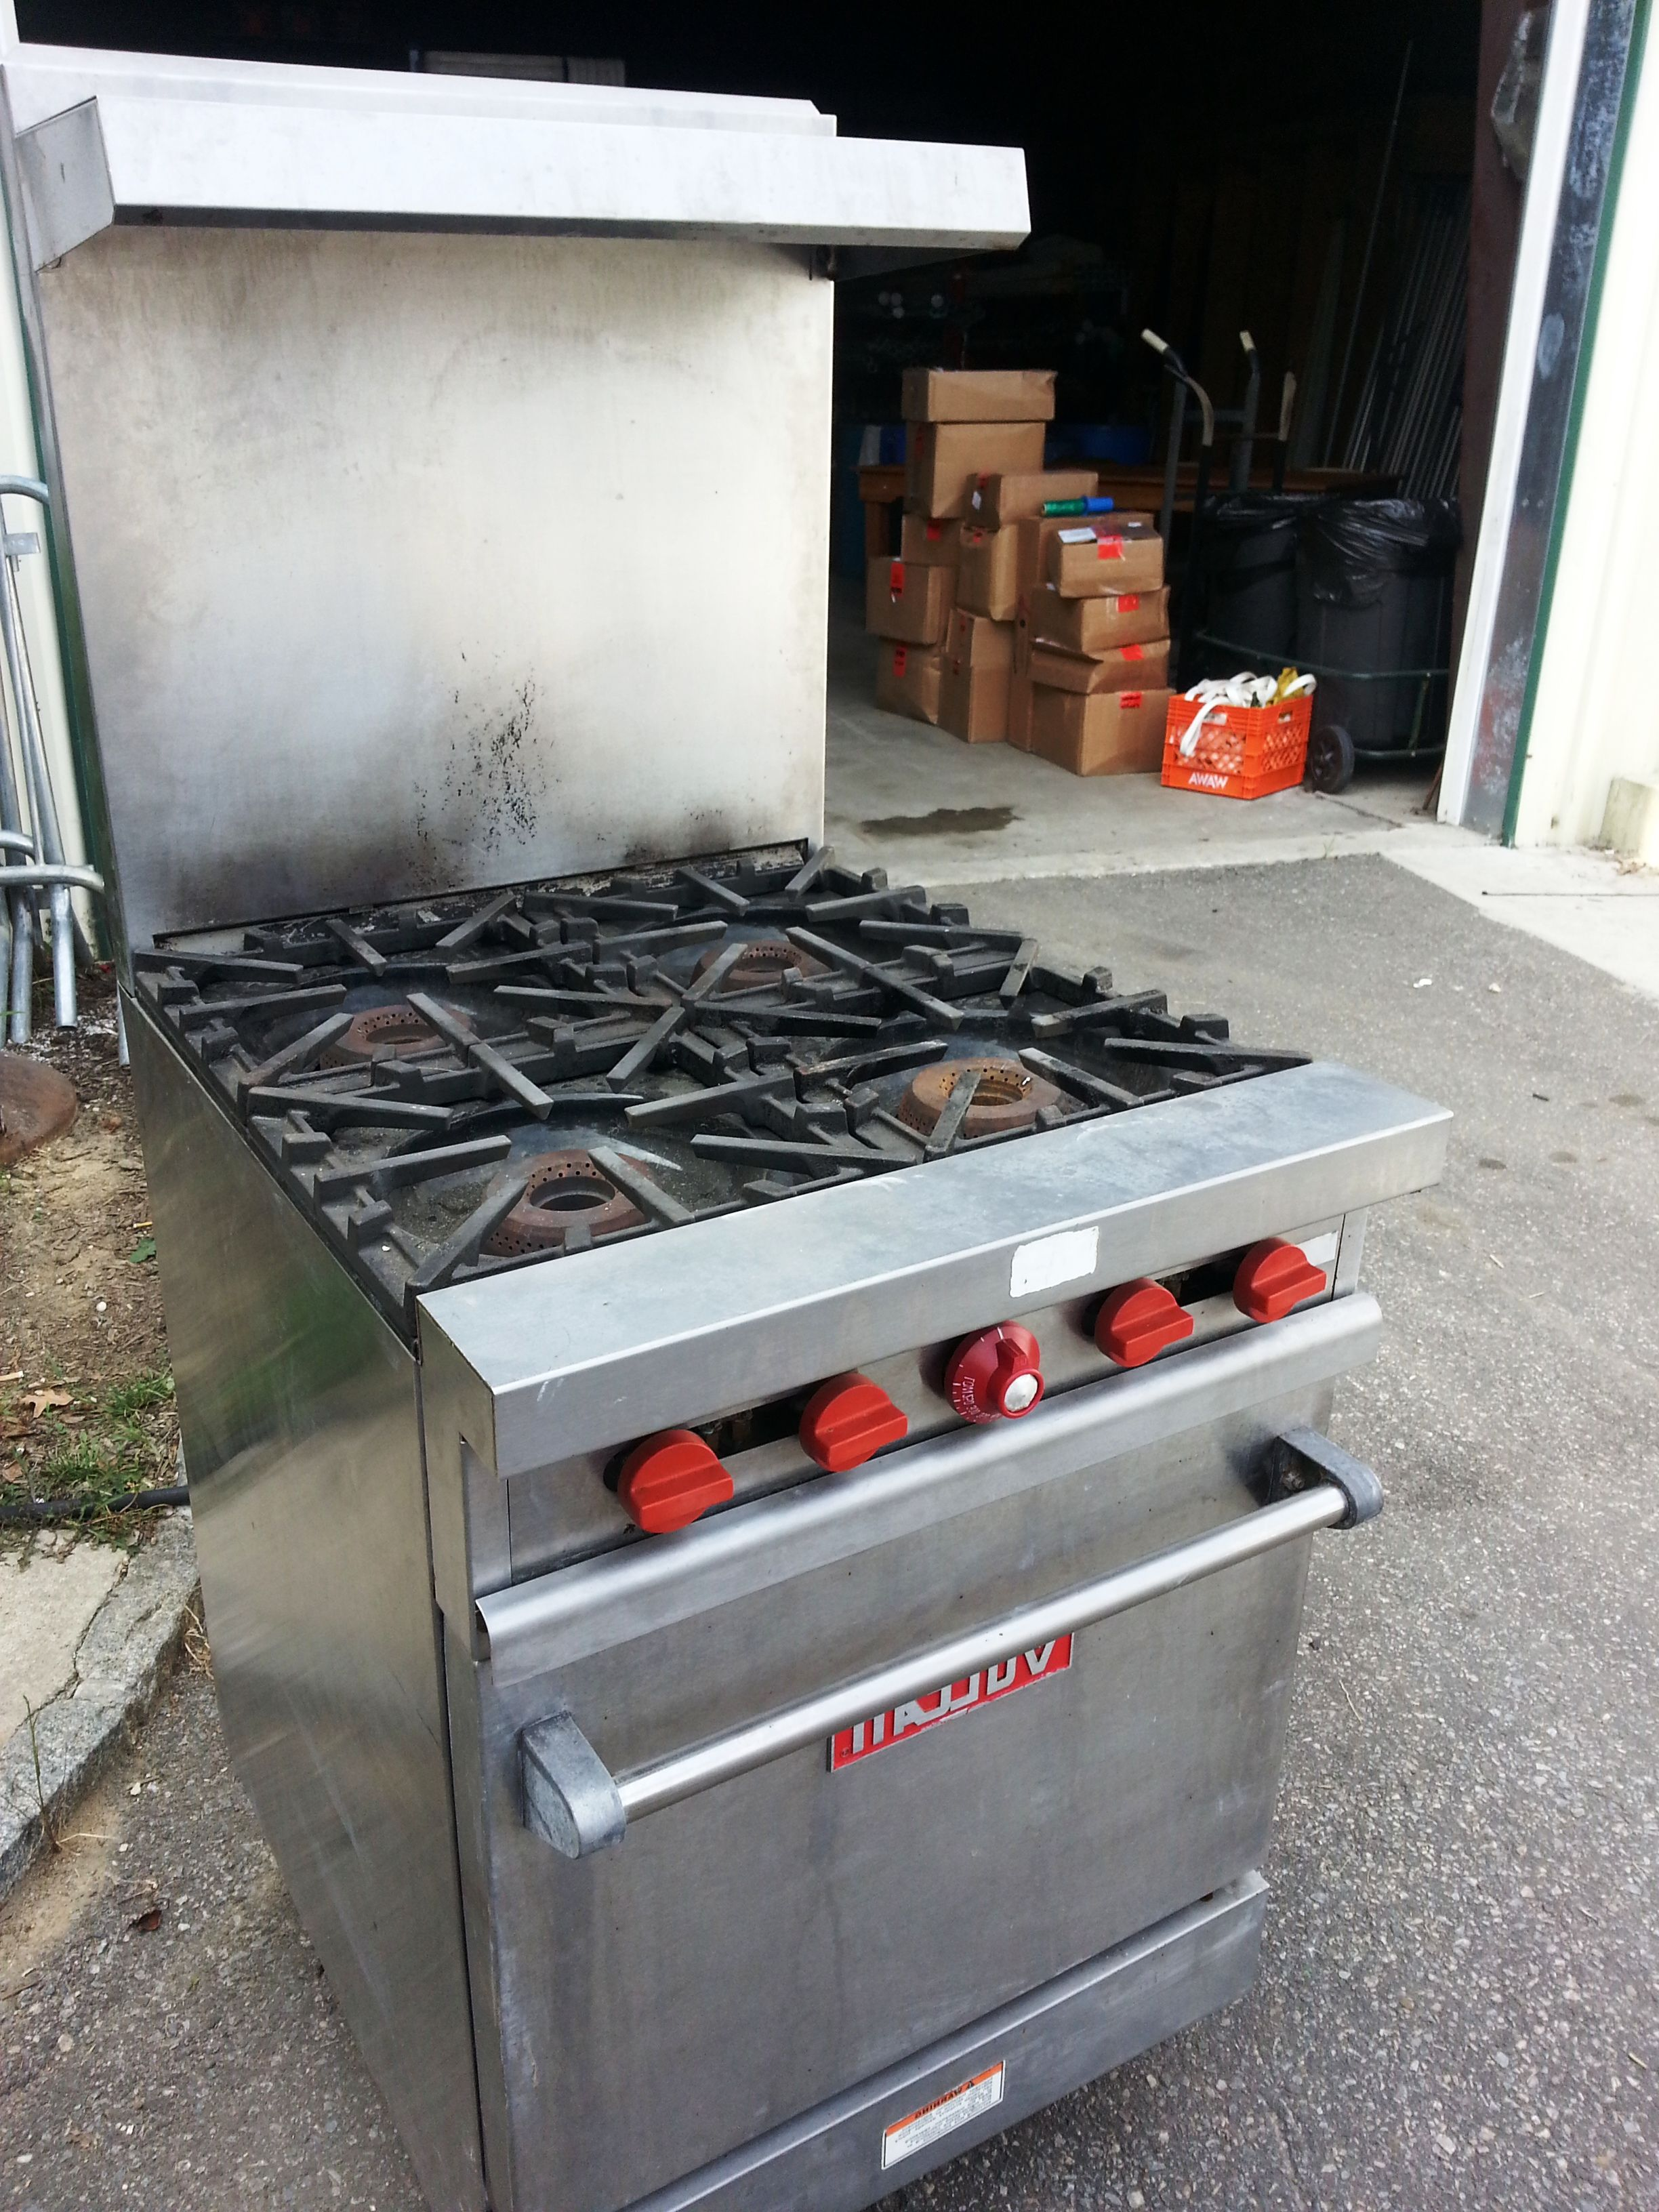 4 Burner Propane Stove with Oven for rent. Catering